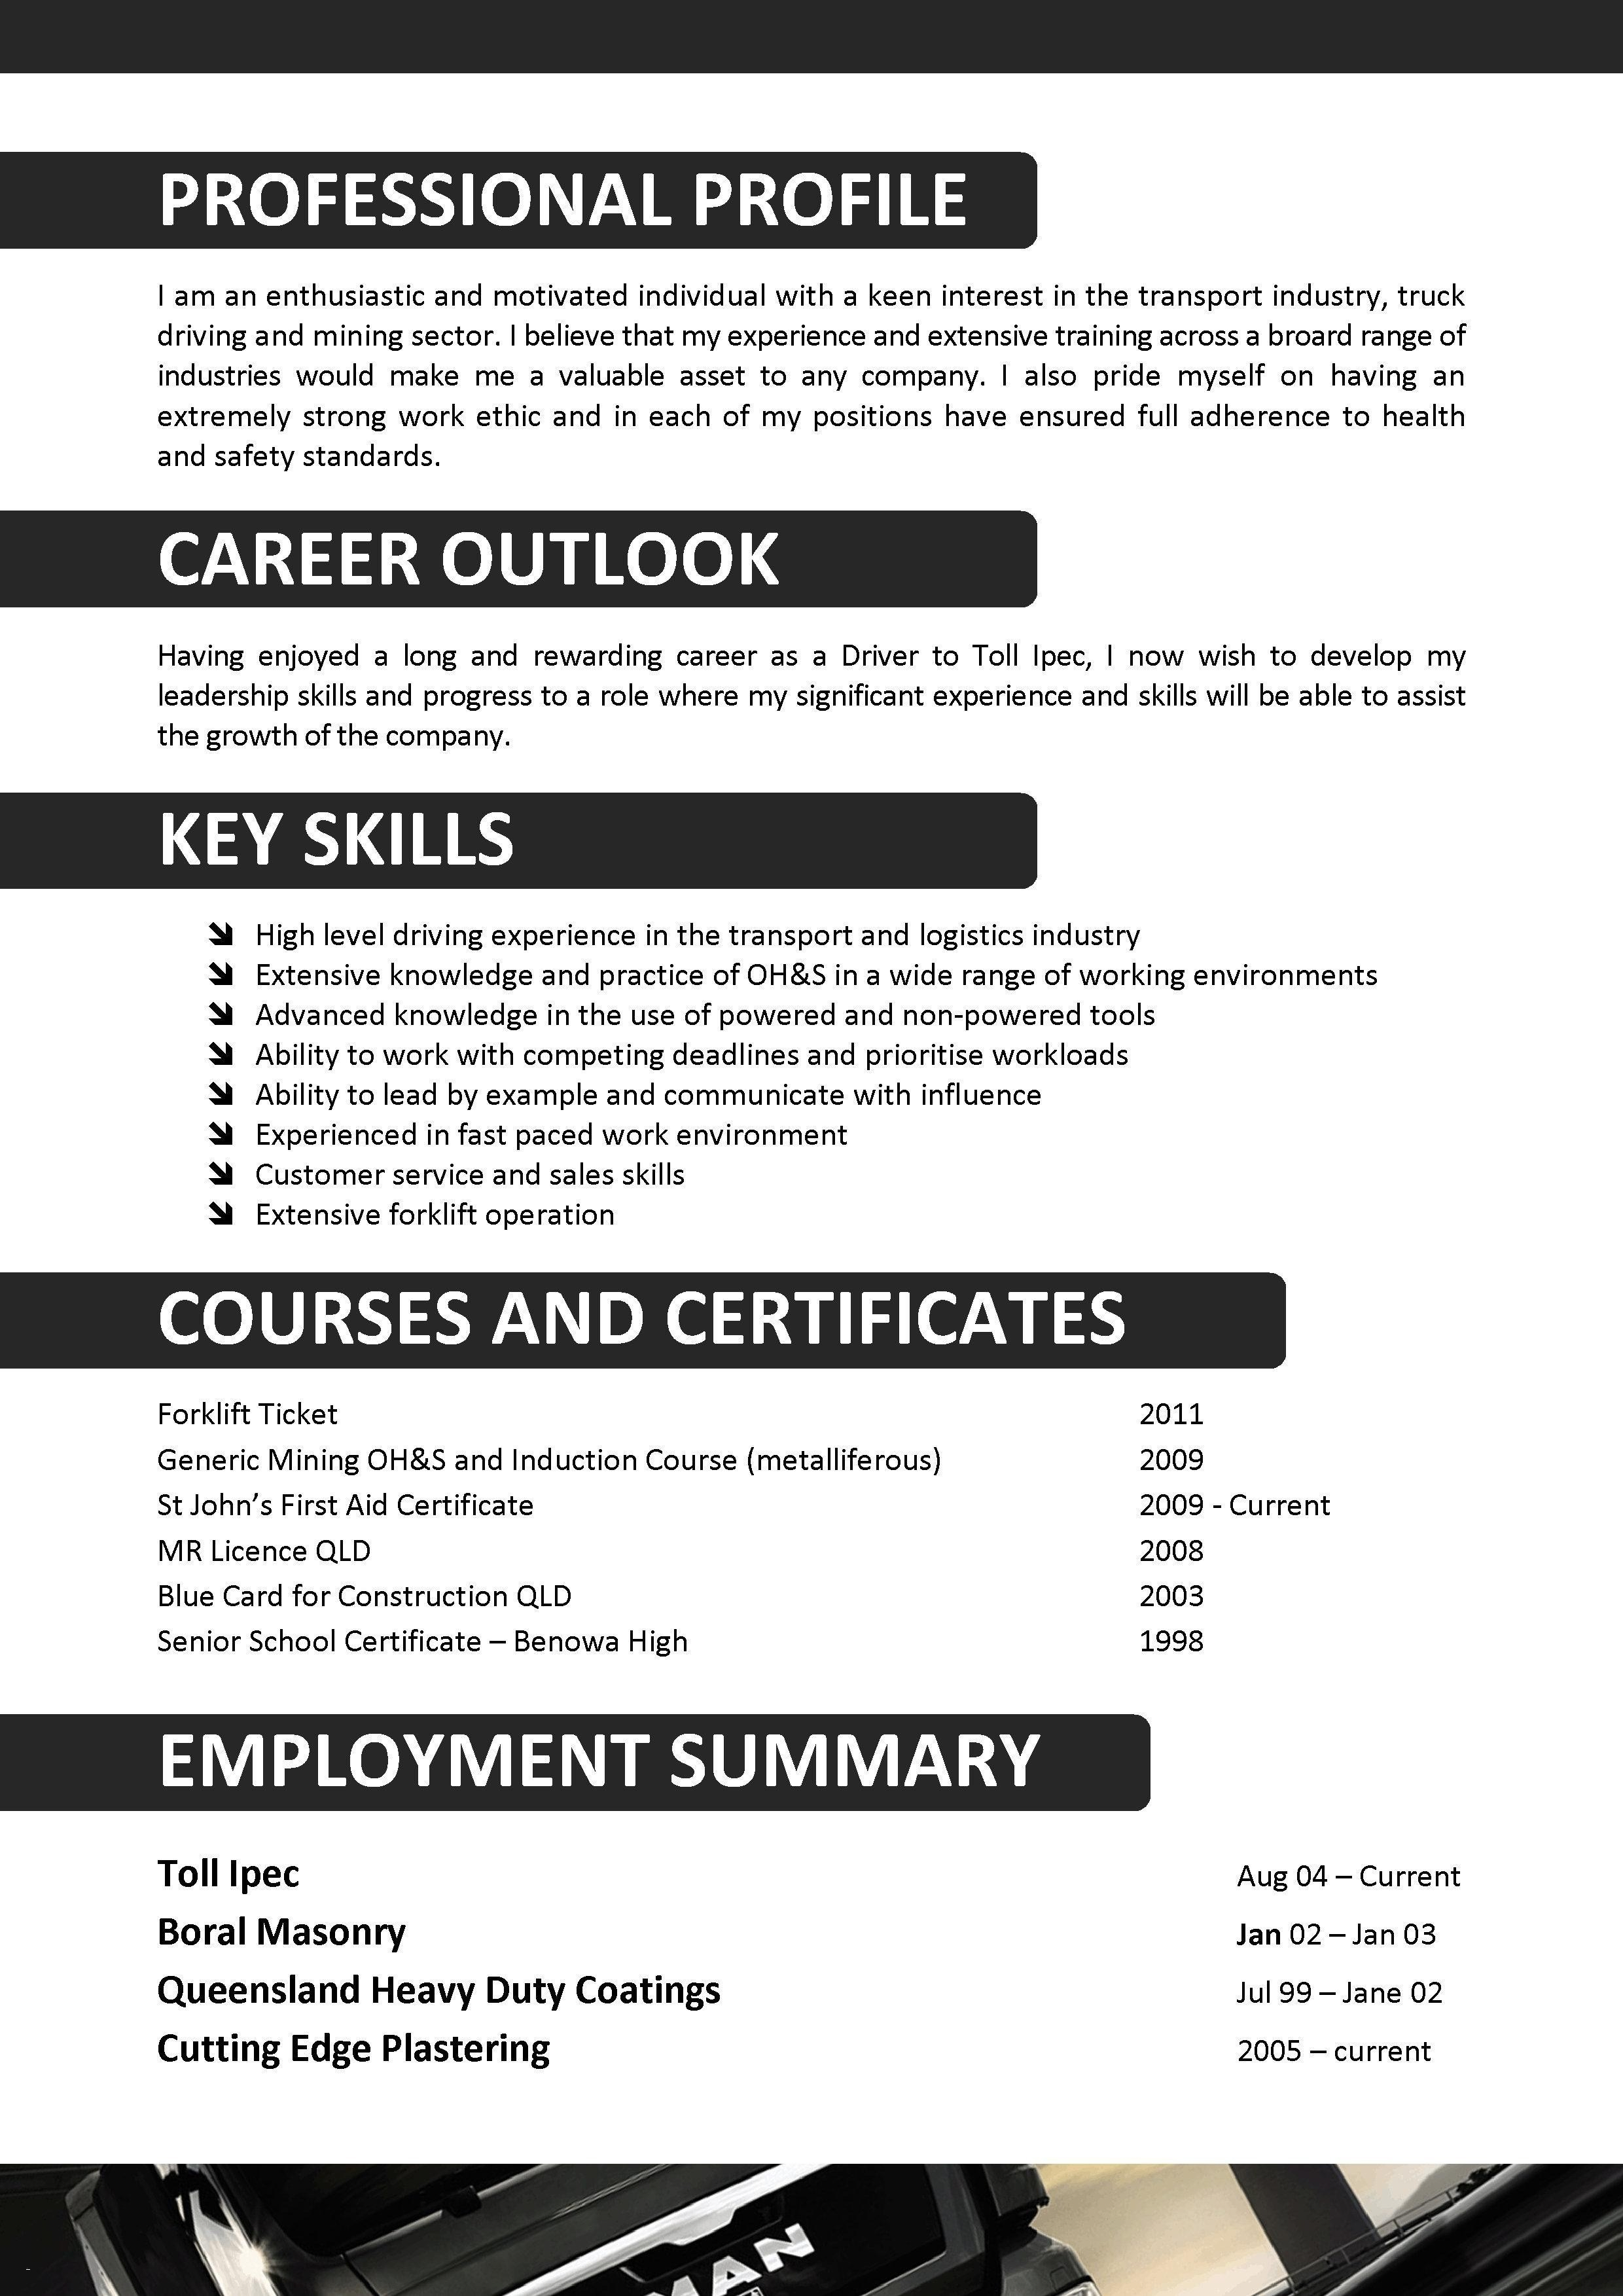 Resume for Driving Job - Delivery Driver Skills for Resume Inspirational Valid Truck Driver